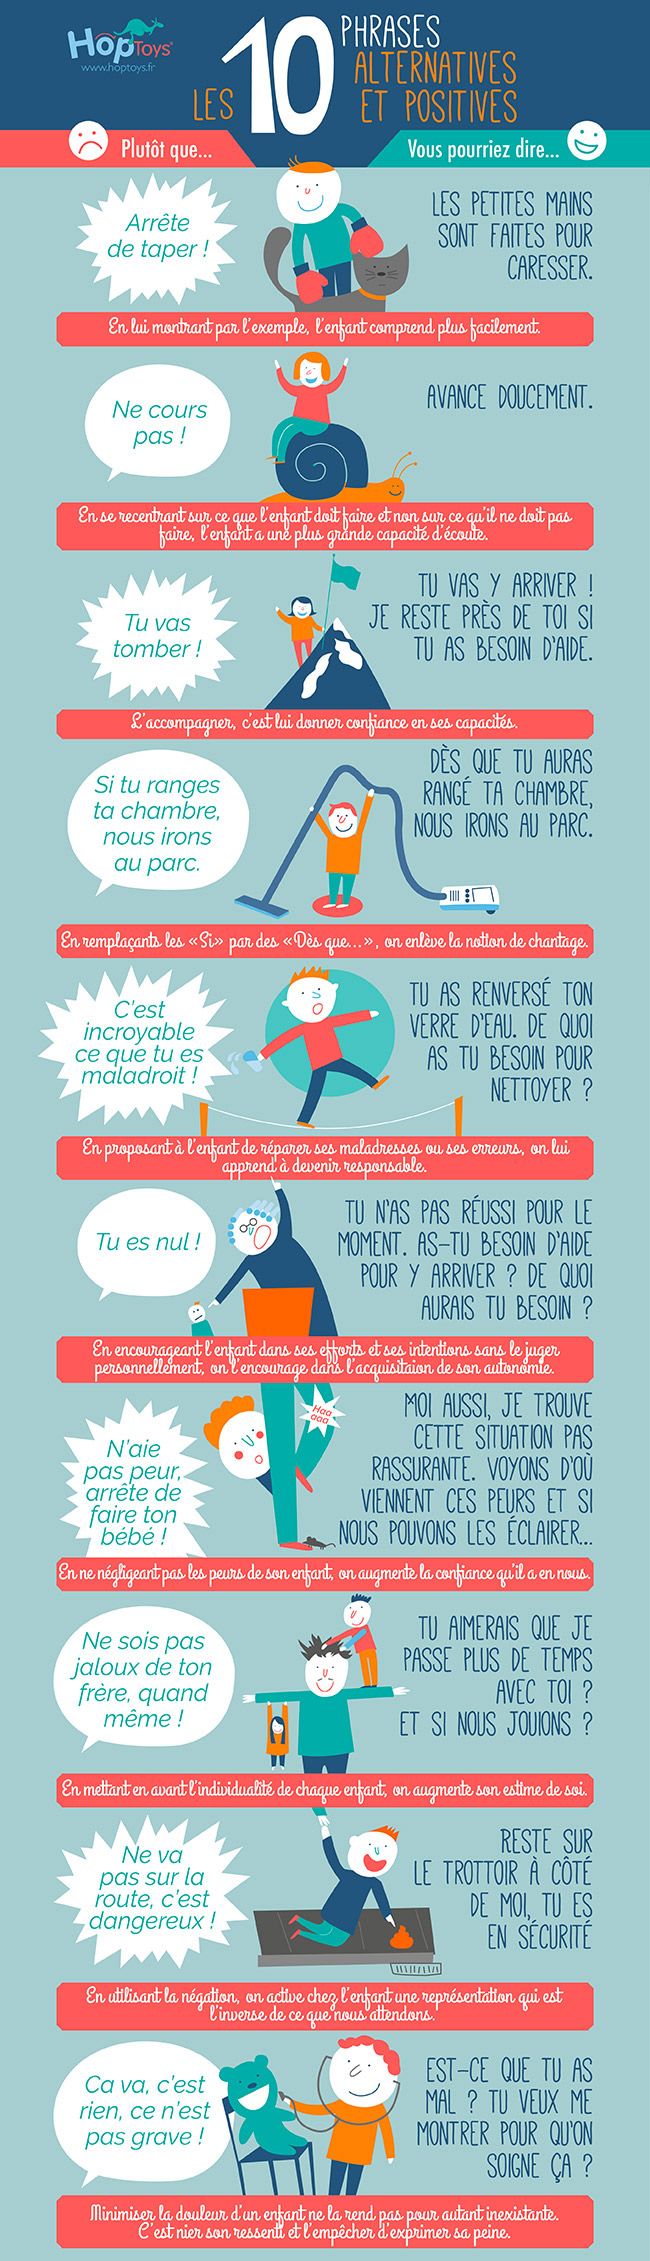 infographie-phrases_blog-1